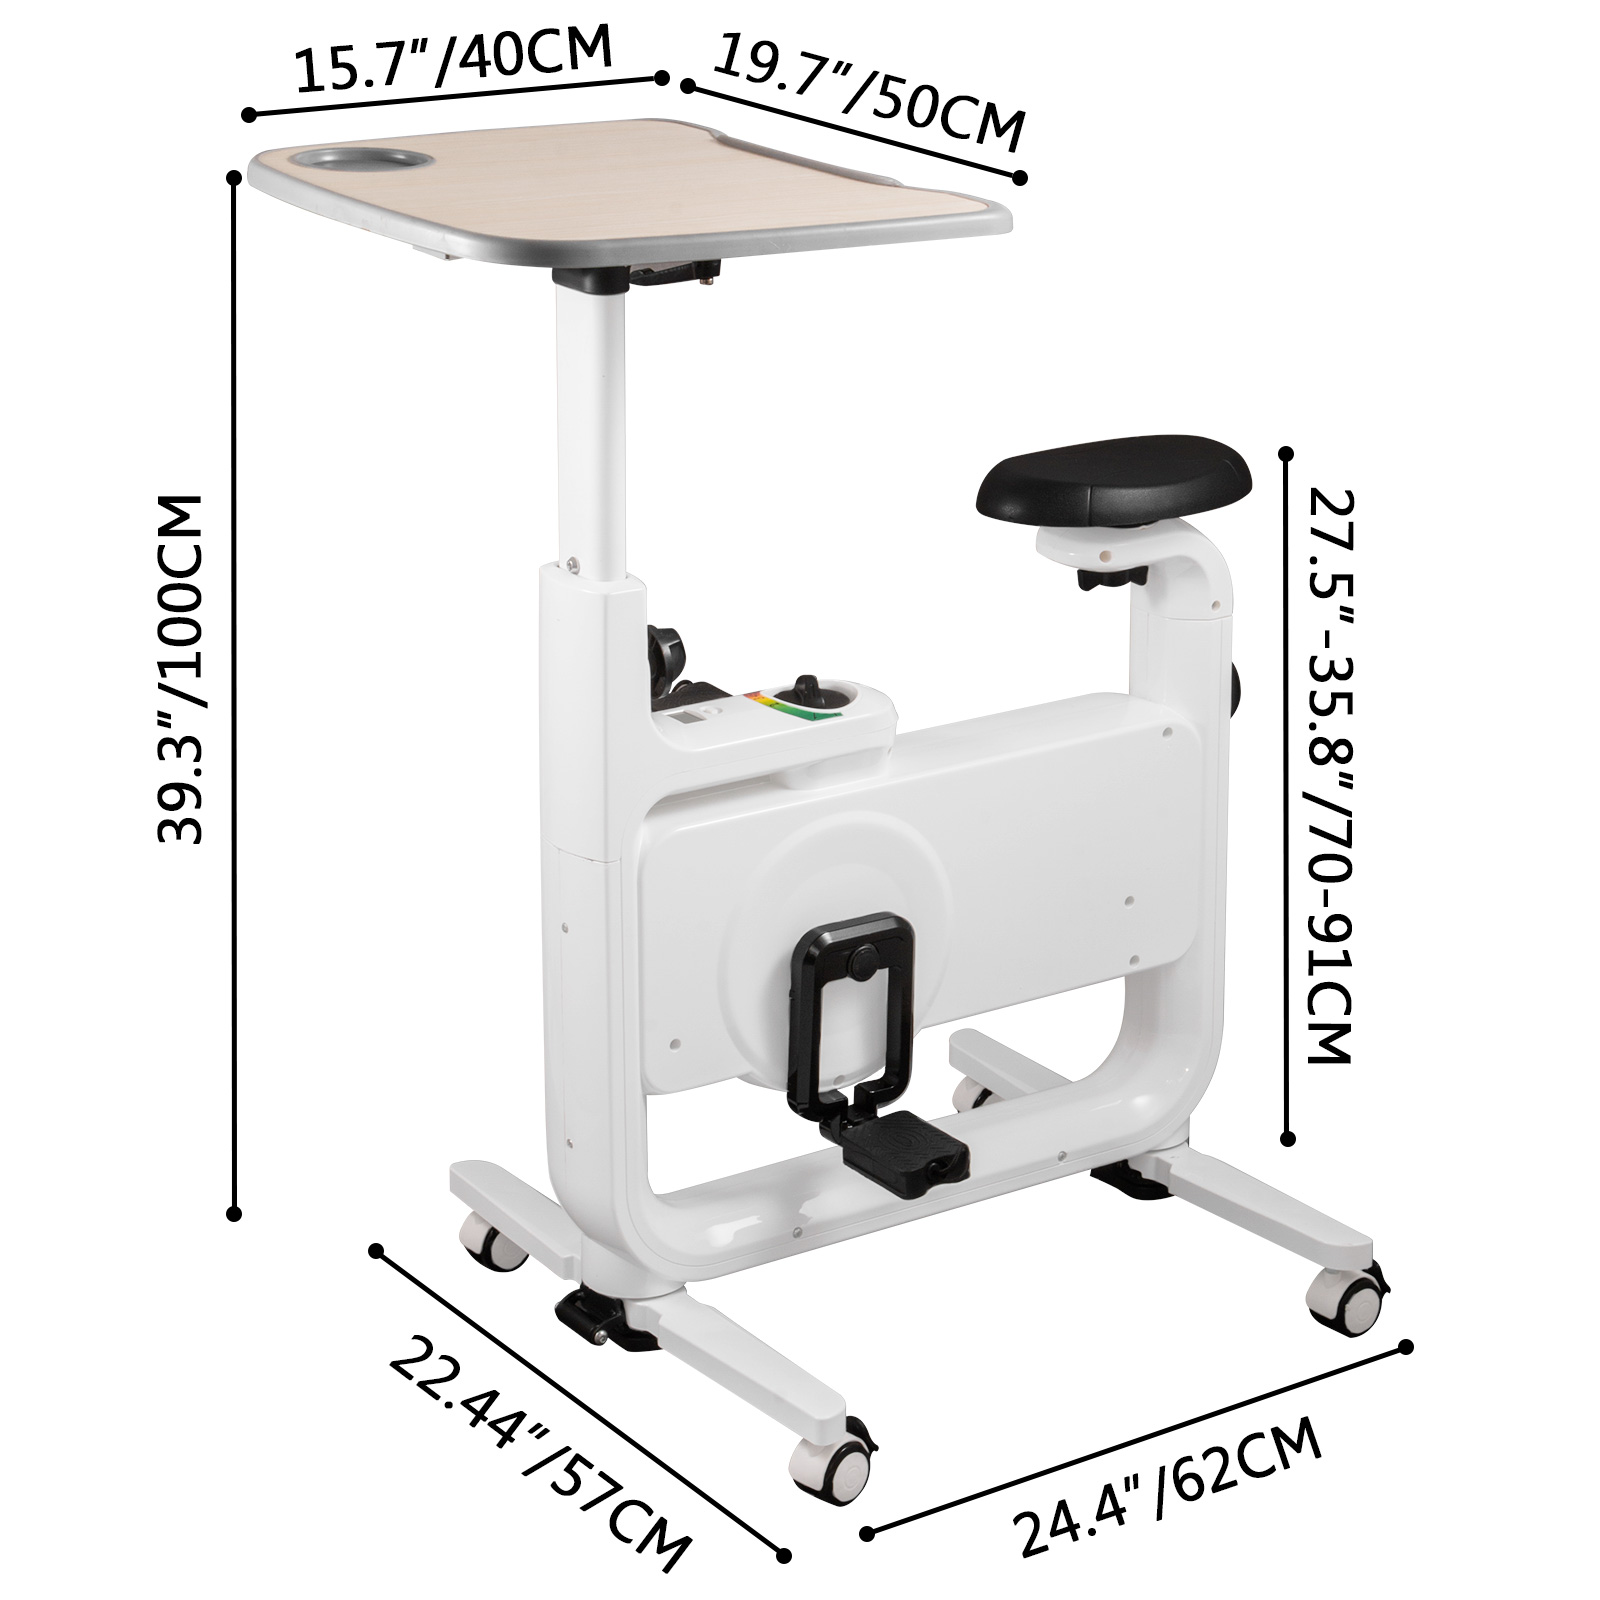 Multi-style-Magnetic-Exercise-Bike-office-Bicycle-under-Desk-Fitness-Cardio miniature 44